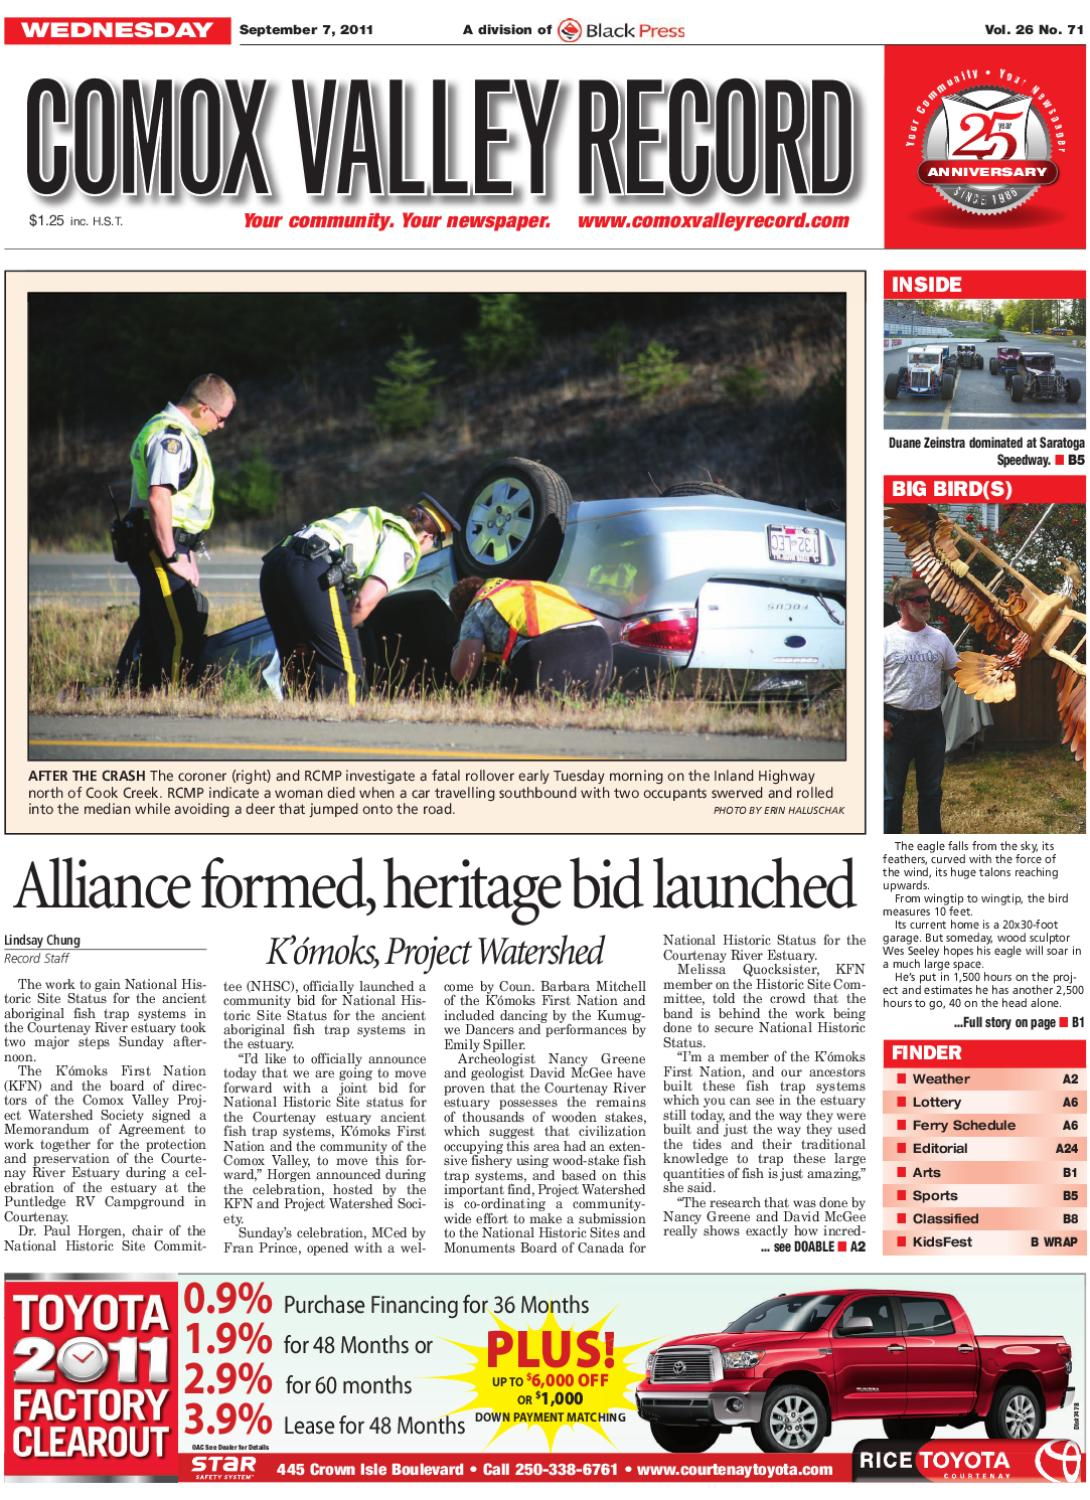 Wed September 7 2011 Comox Valley Record By Comox Valley Record Newspaper Issuu